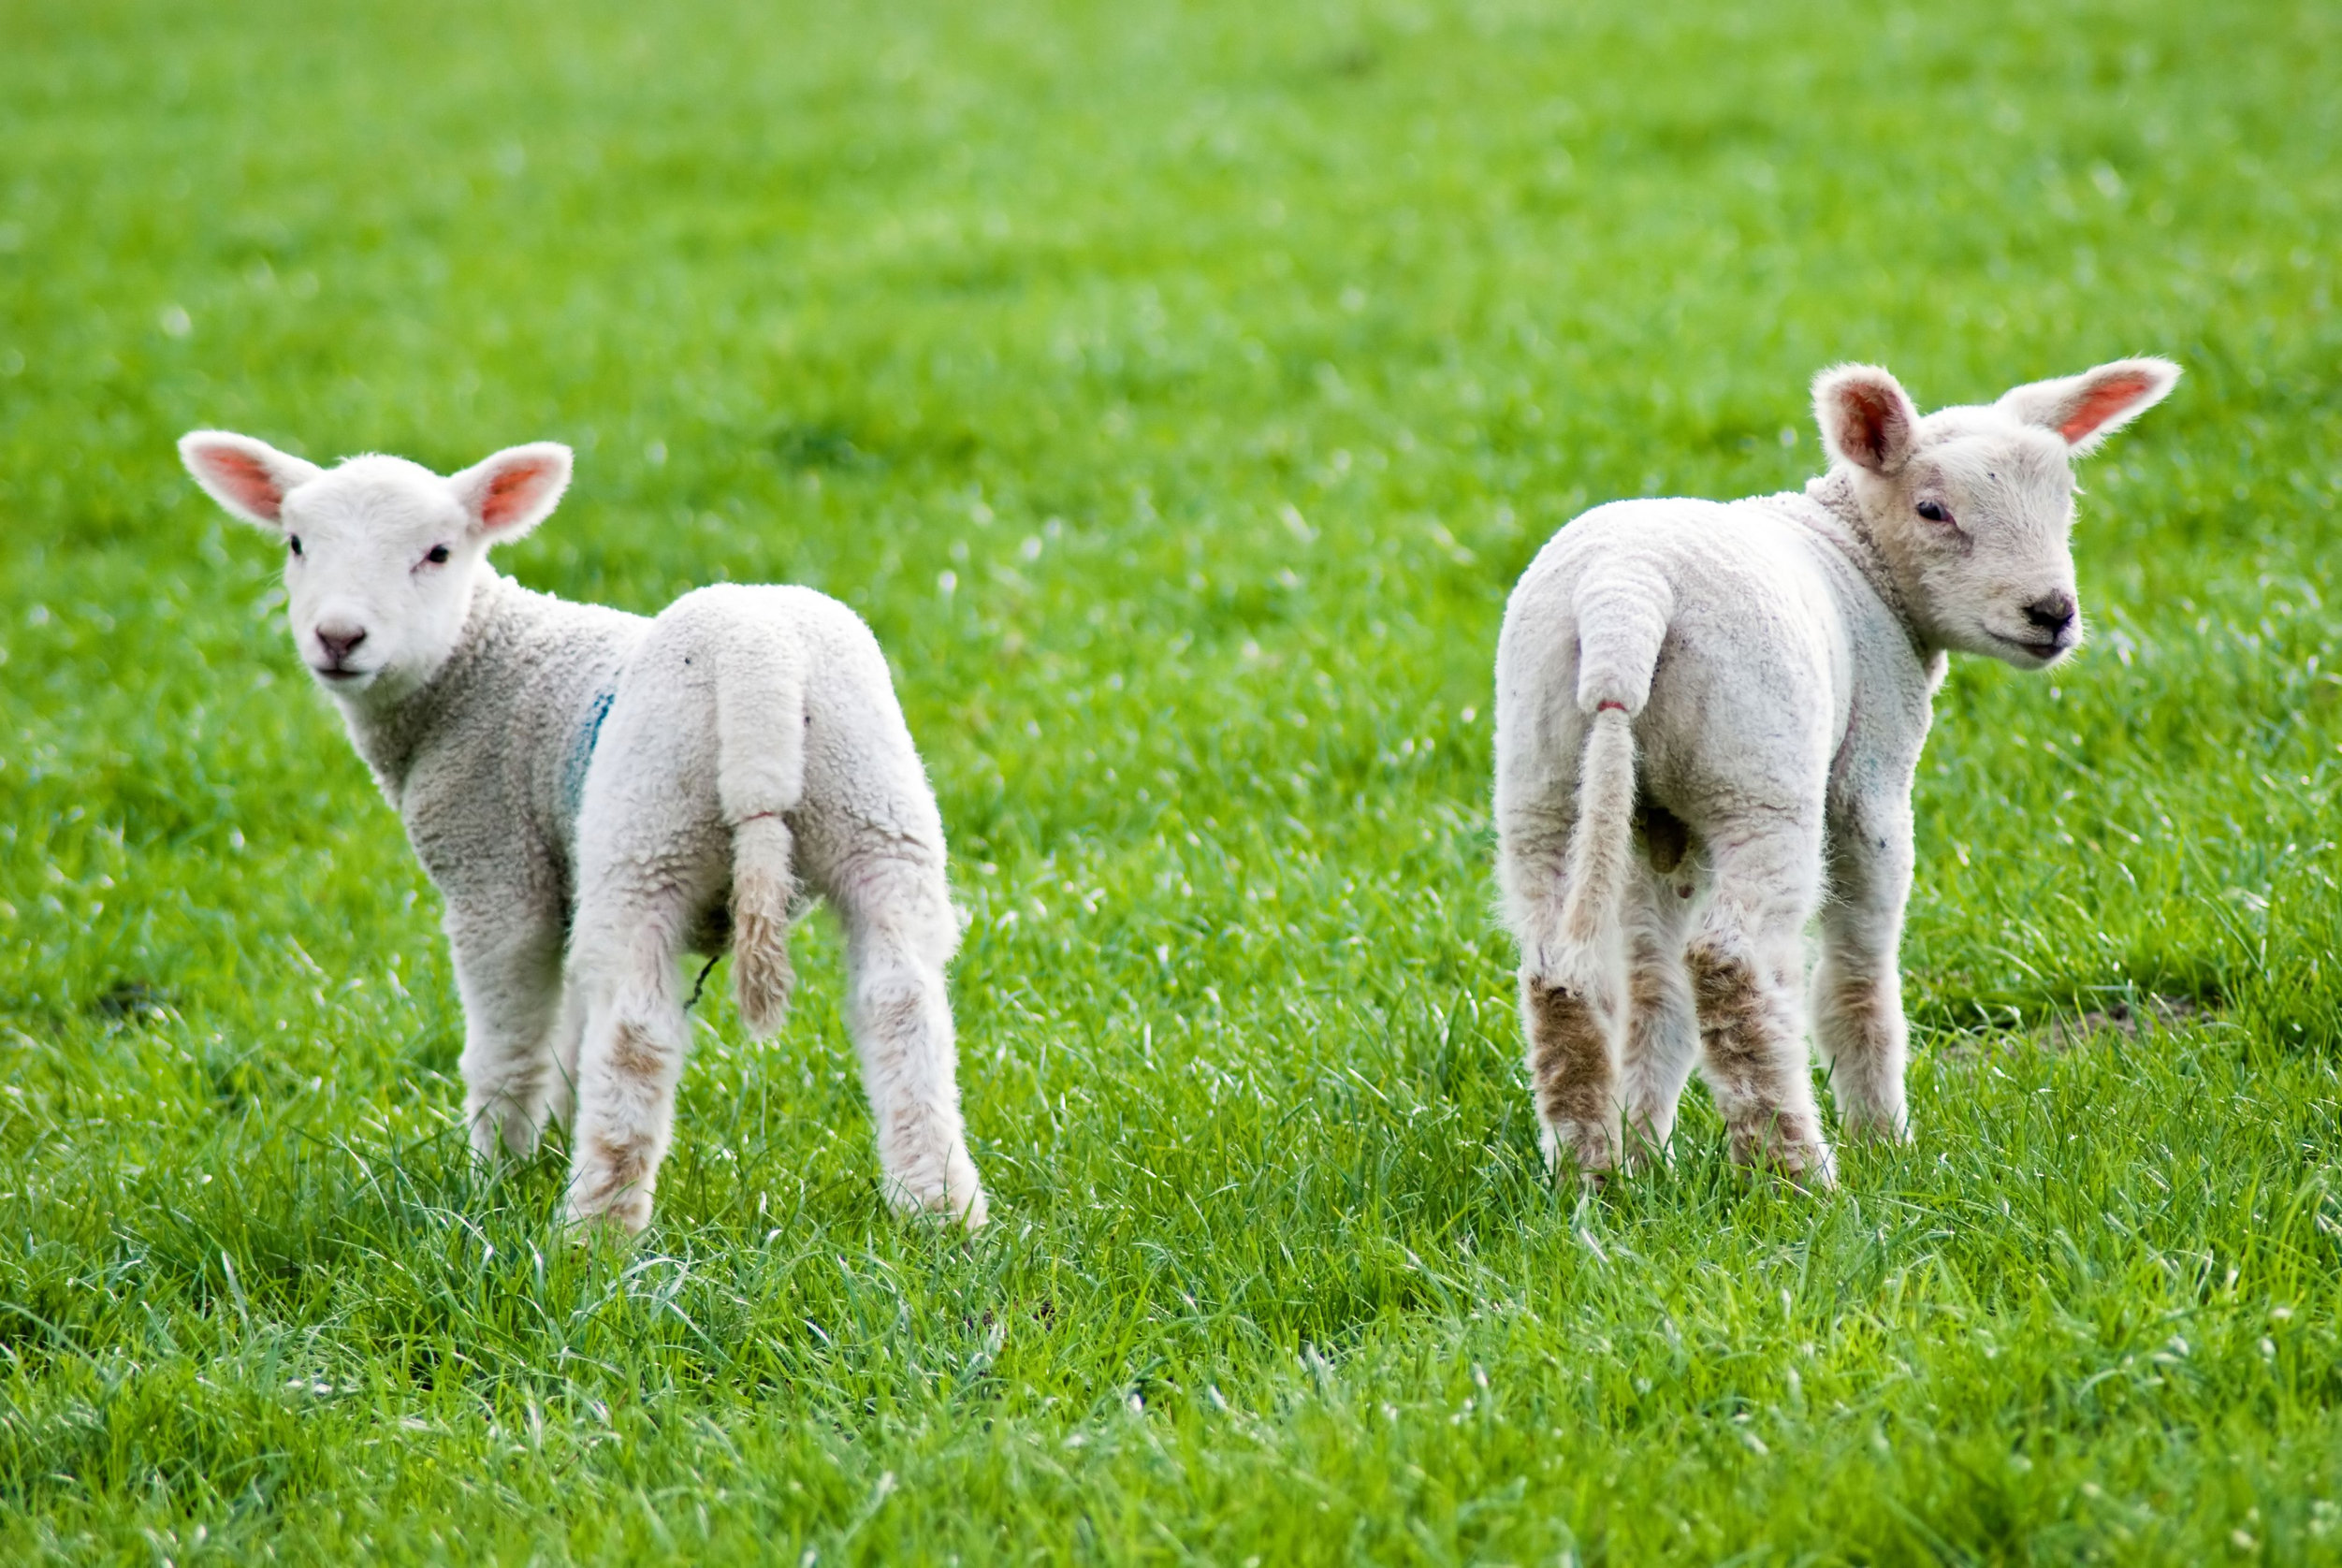 Two spring lambs turning round to face viewer